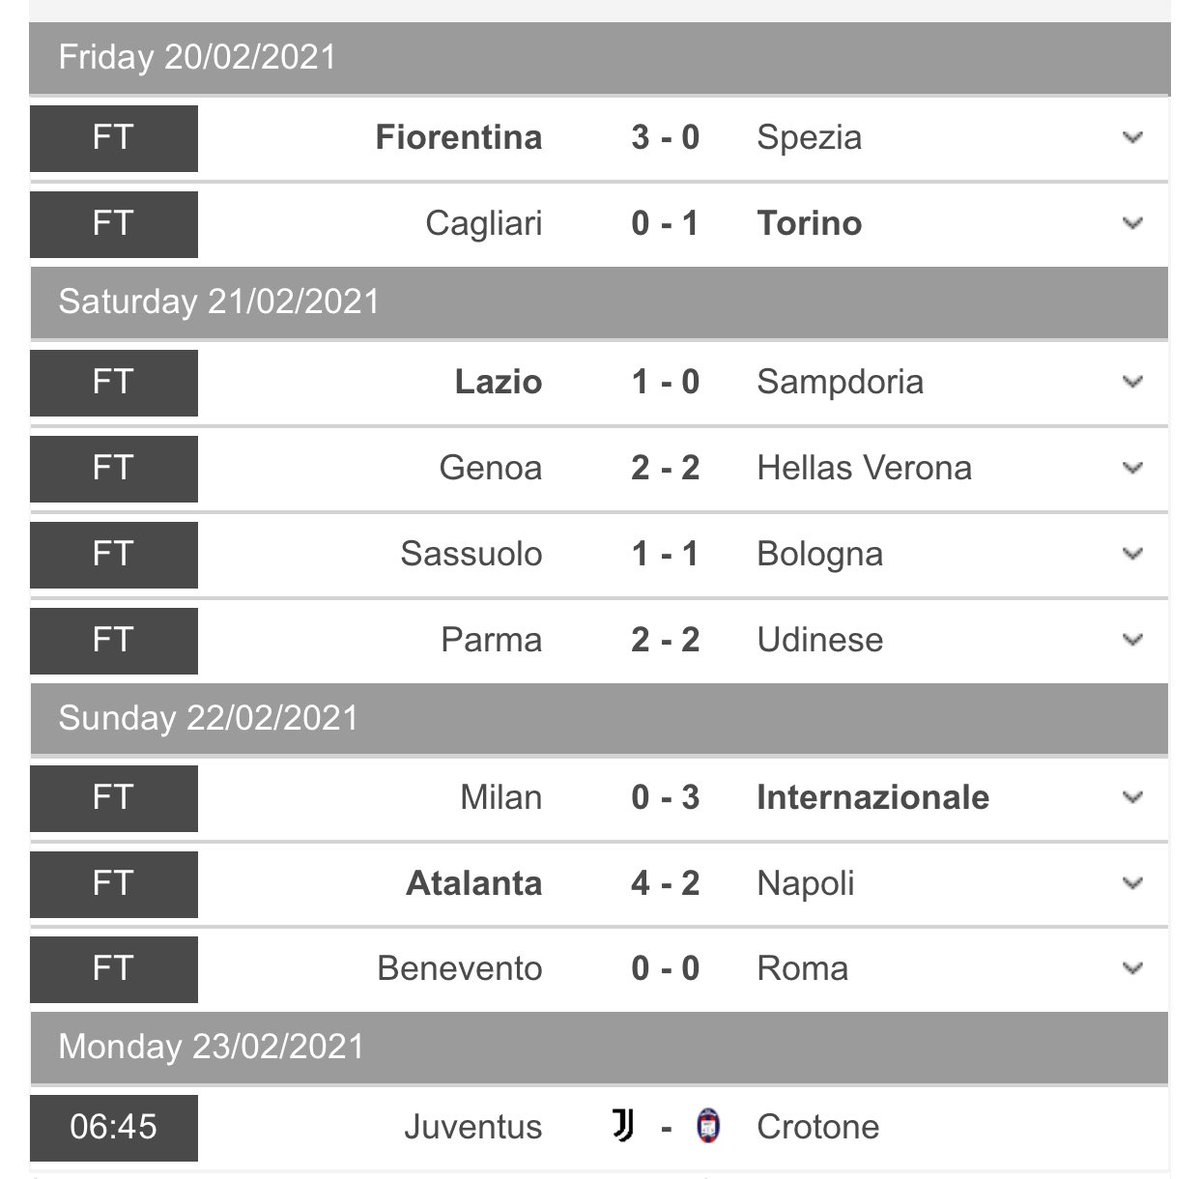 Matchday 23 update:  Inter dominant over Milan and go 4 points clear at the top. Napoli carried their form on from the Europa league with Atalanta winning in Bergamo. Roma couldn't beat 10 man Benevento and close the gap further on Milan. Juve vs Crotone to close the round off. https://t.co/URcsqn89Xj